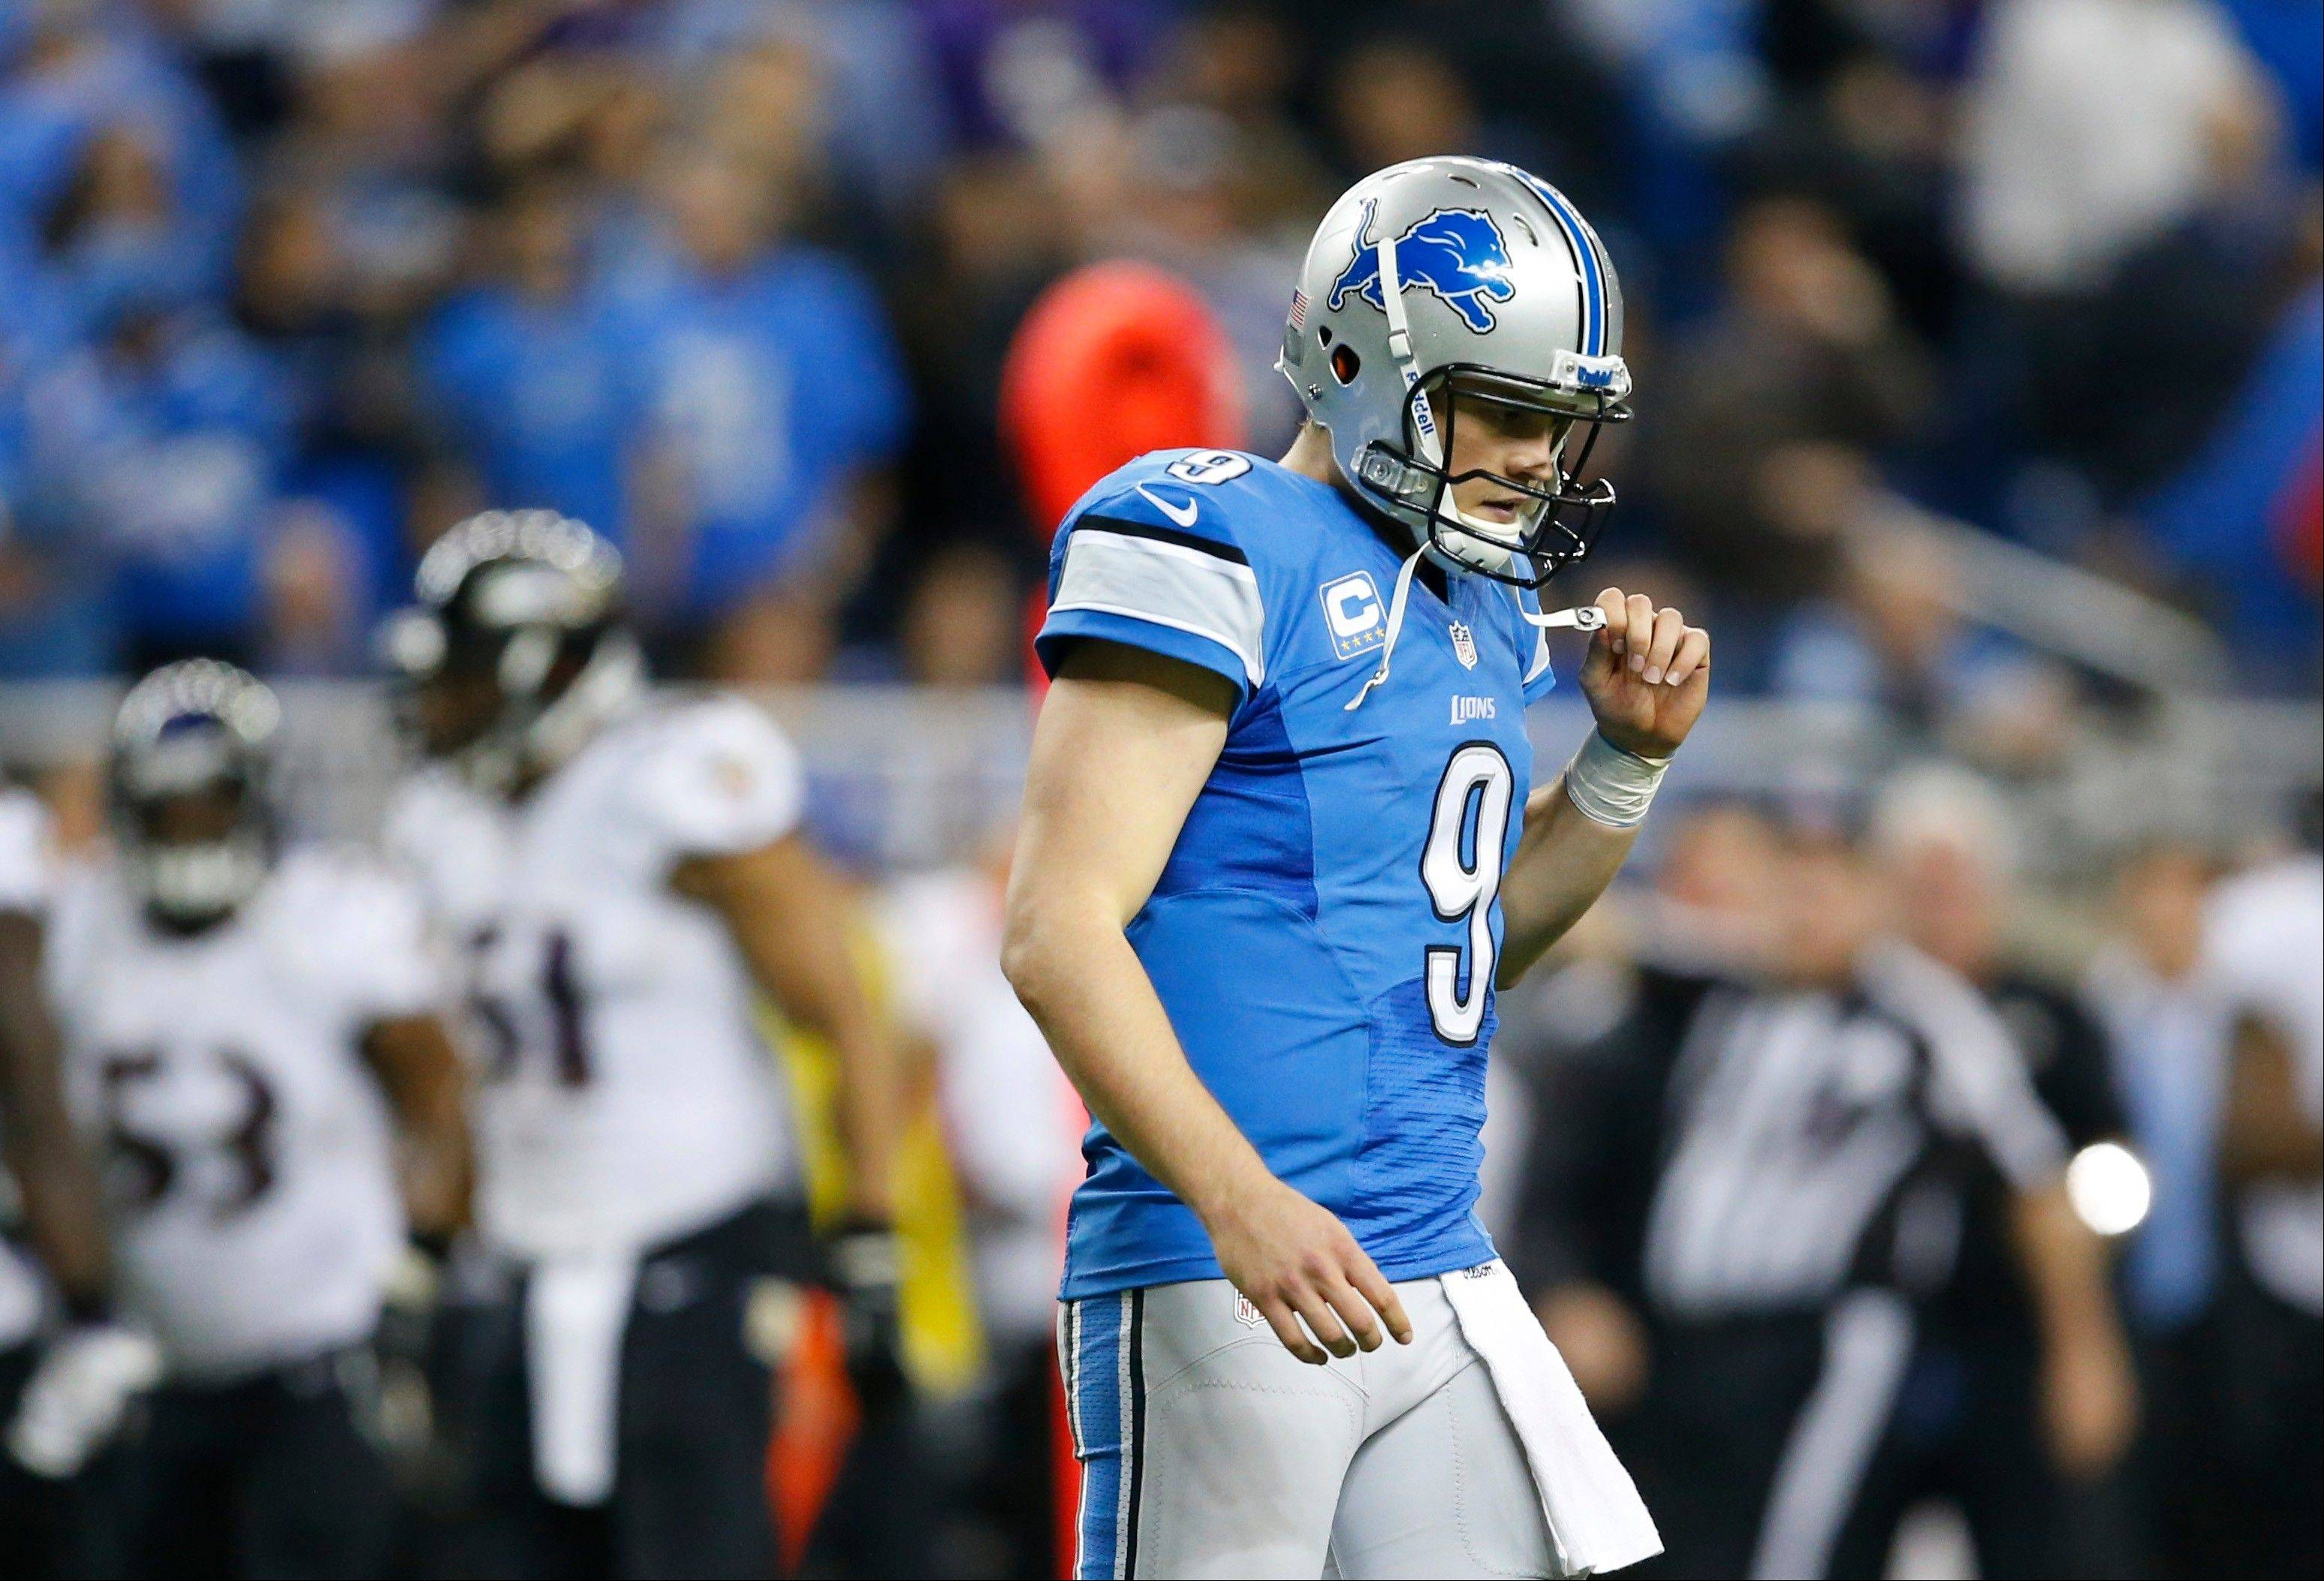 Detroit Lions quarterback Matthew Stafford walks off the field after Baltimore Ravens free safety Matt Elam intercepted his pass with less than a minute to play Monday night. Detroit's loss gave control of the division to the first-place Bears with two games to play.